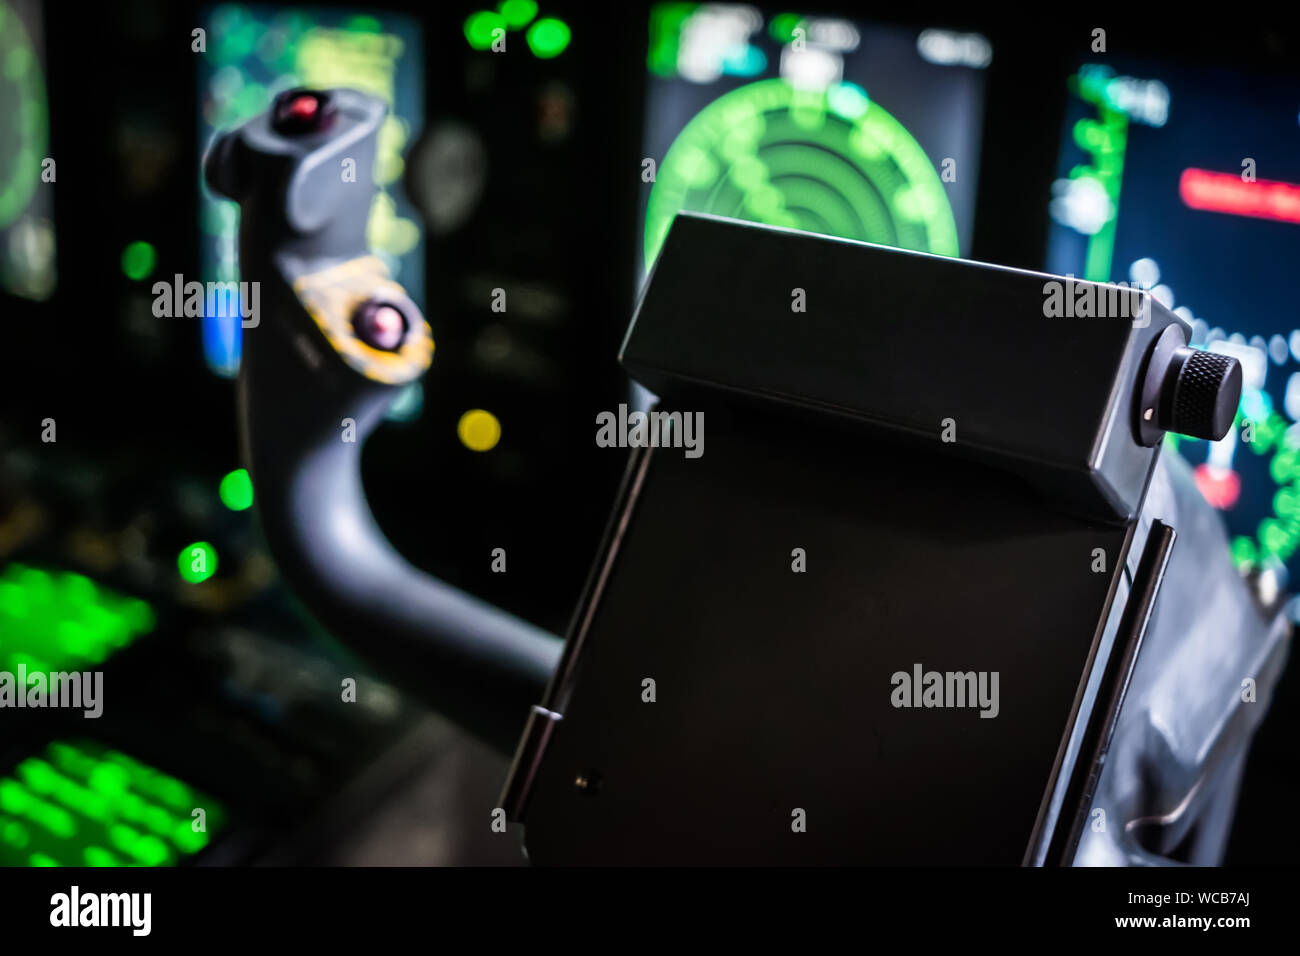 Glass Cockpit Stock Photos & Glass Cockpit Stock Images - Alamy